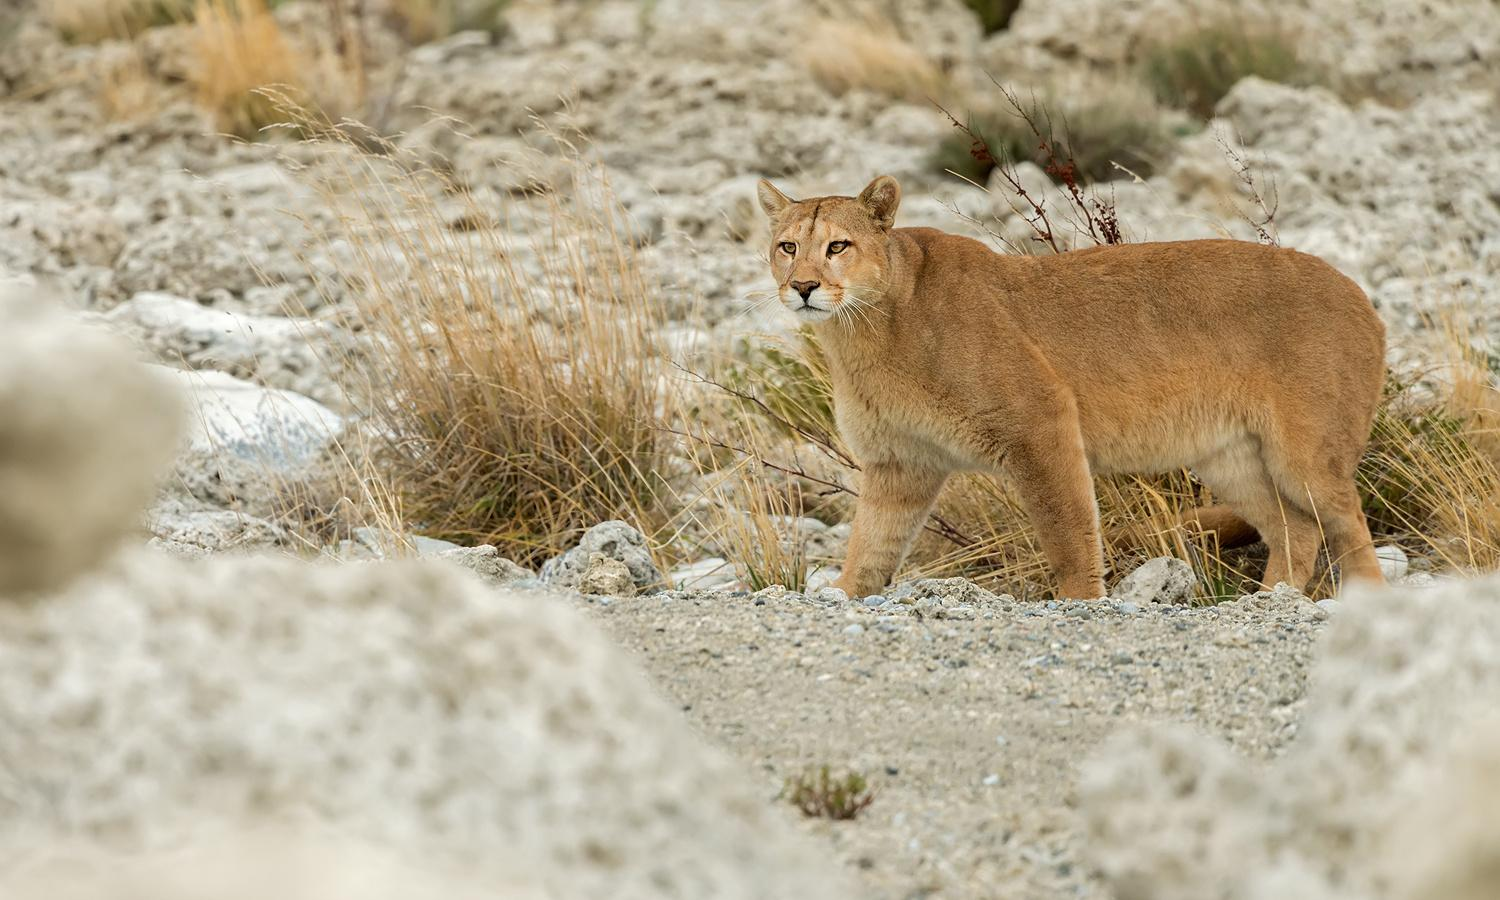 Oldest parasite DNA yet recorded found in prehistoric puma poo